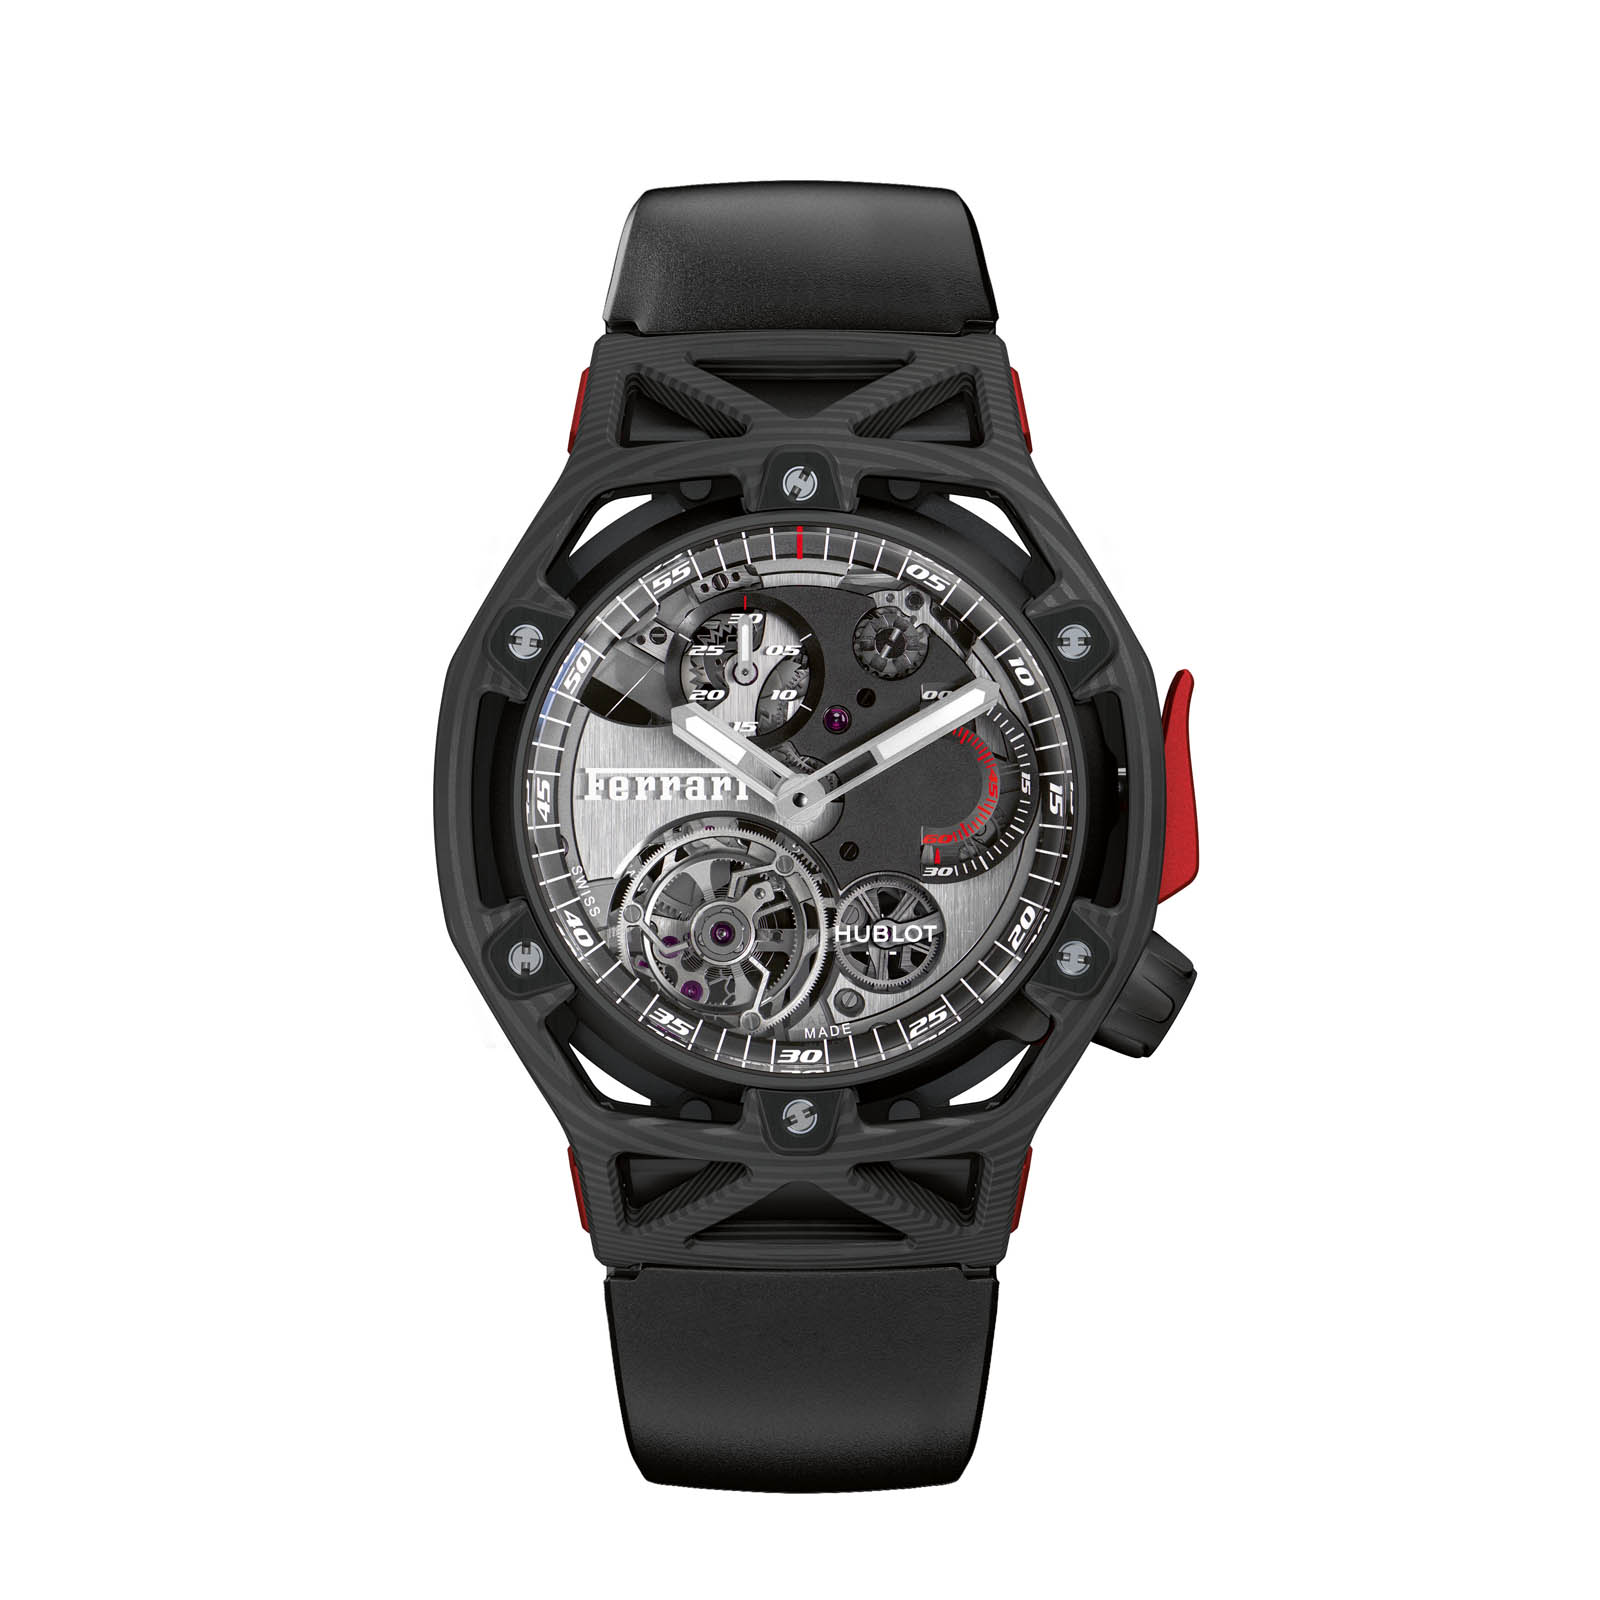 Hublot Techframe (4)